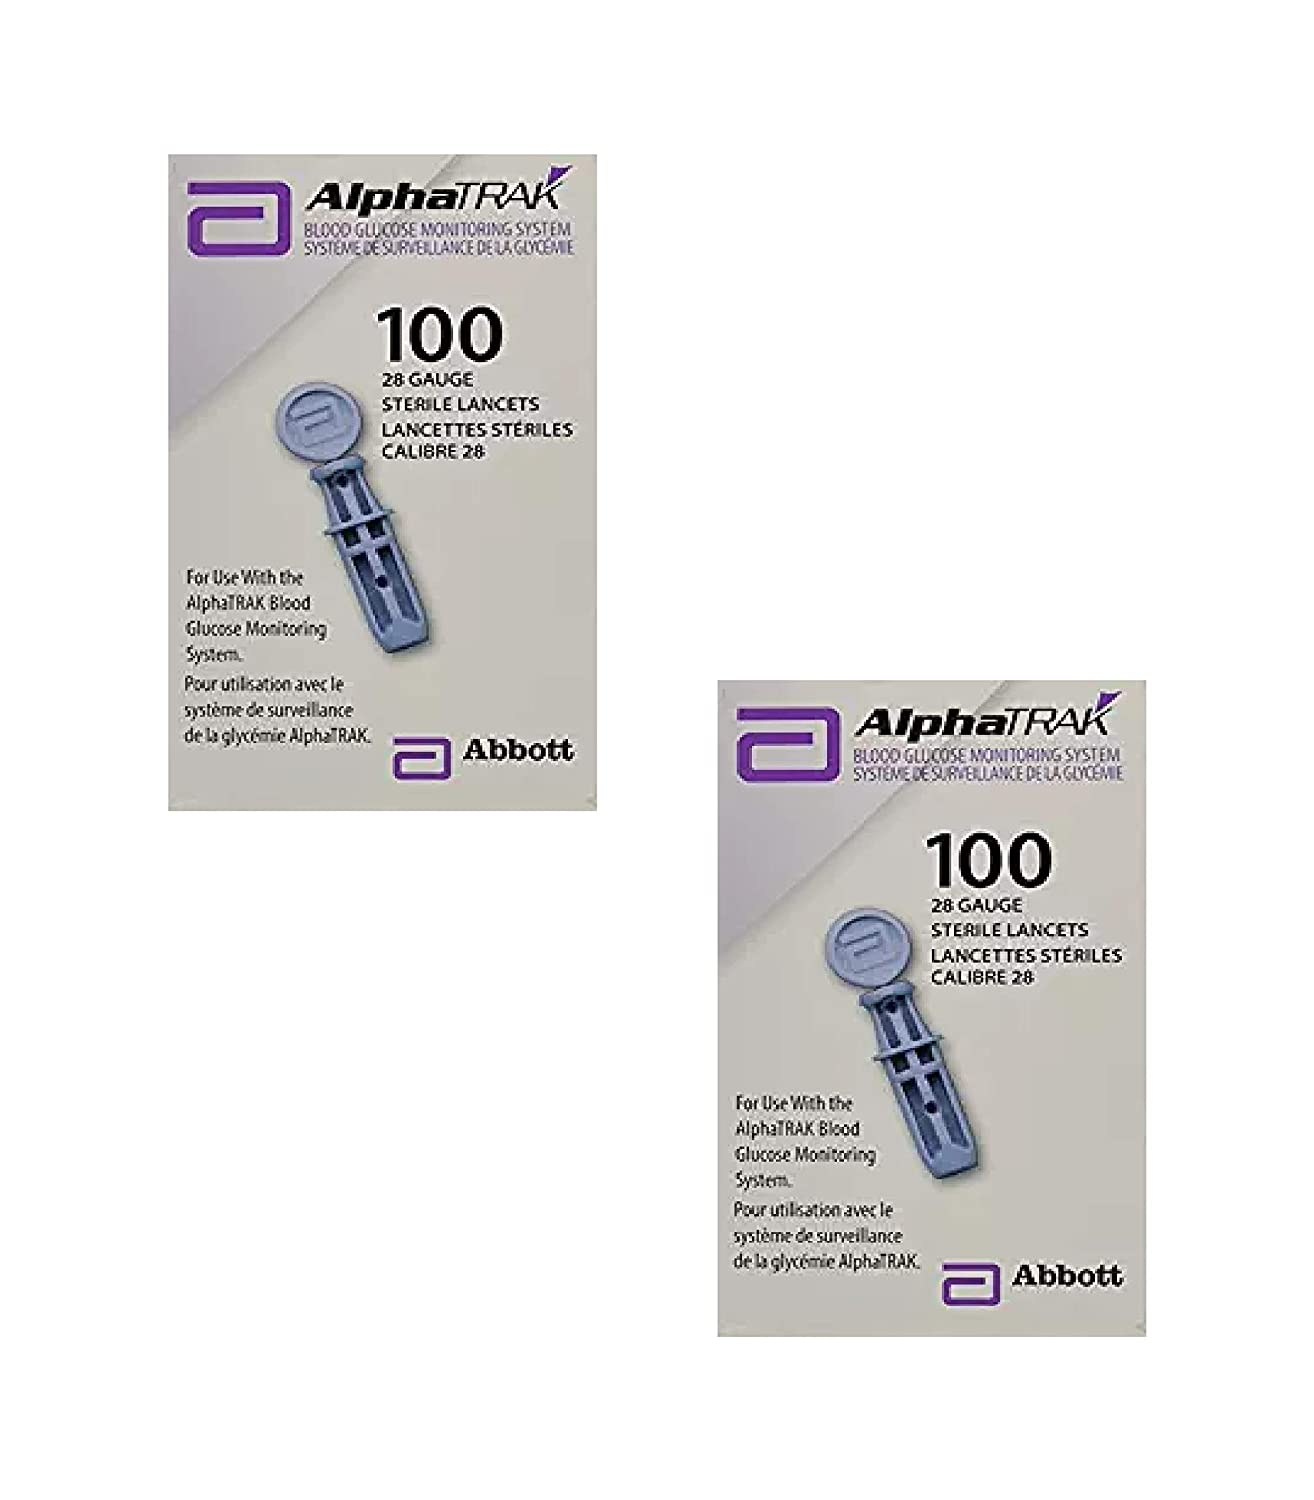 AlphaTRAK Lancets, 28 Gauge, Sterile, Box of 100